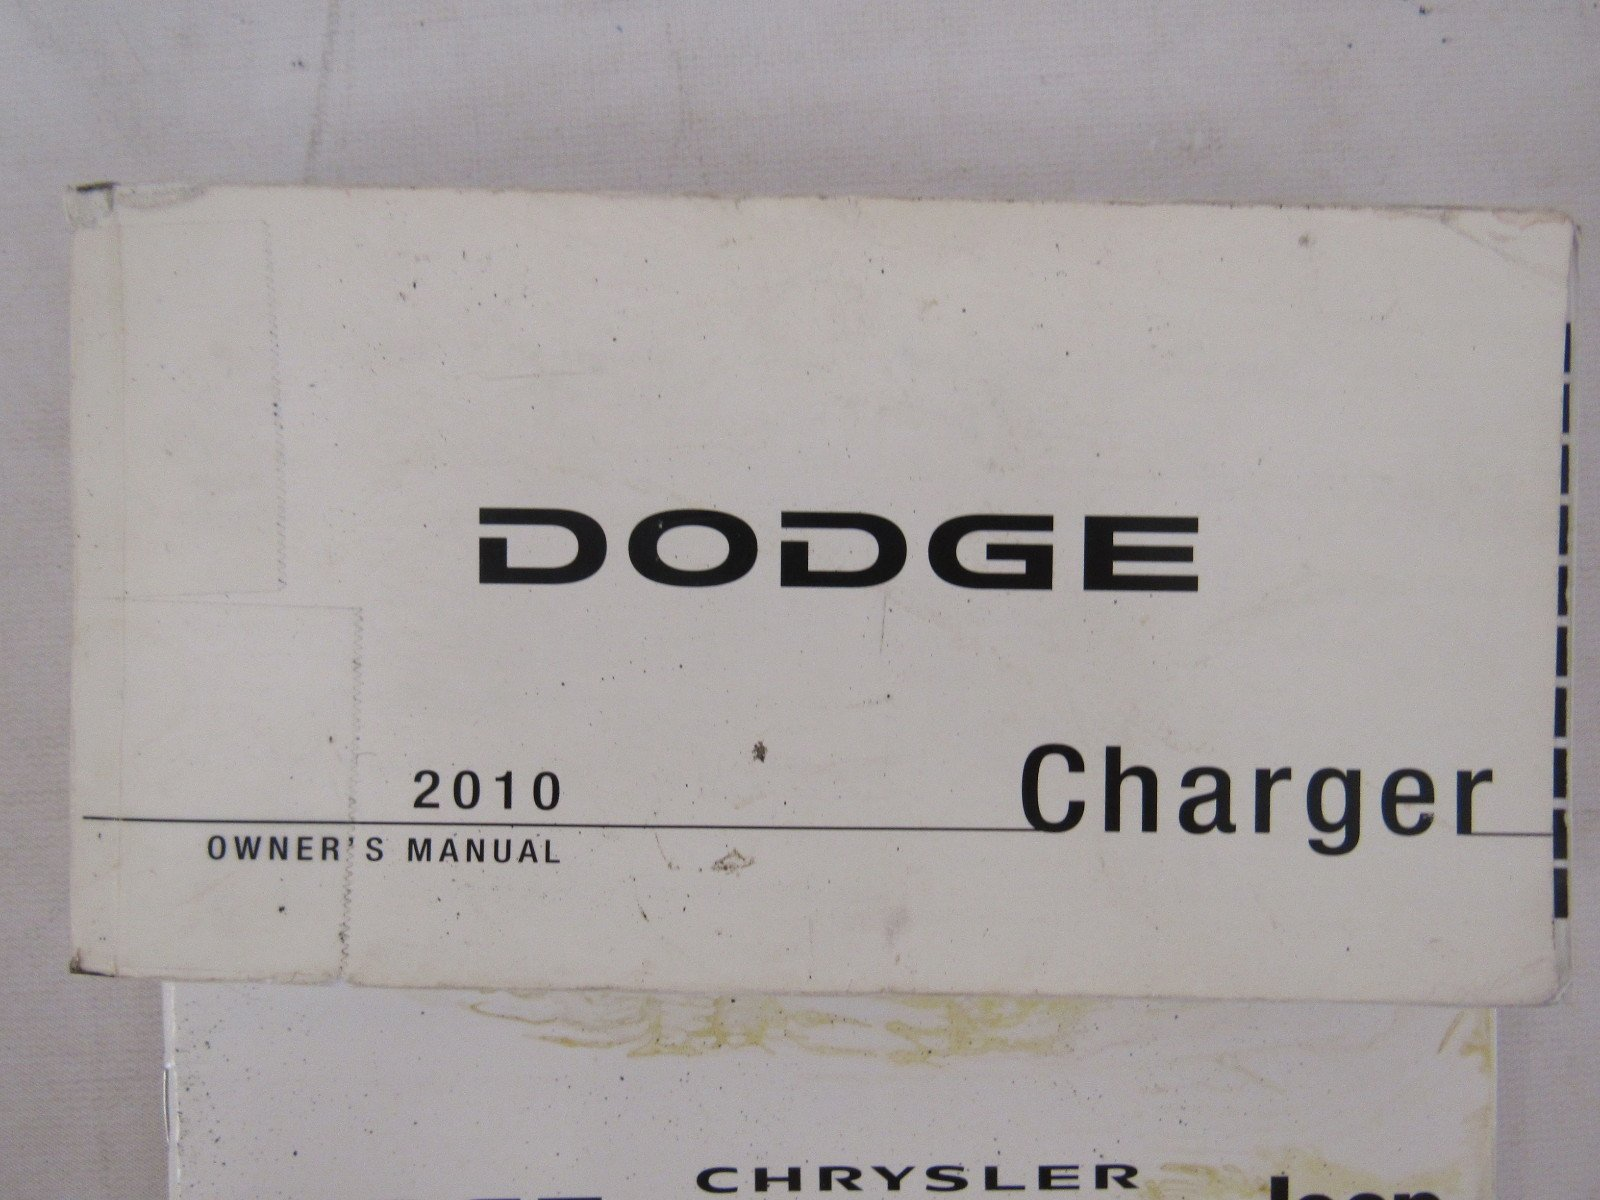 2010 dodge charger owners manual guide book amazon com books rh amazon com 2010 dodge charger owners manual pdf 2010 dodge charger service manual